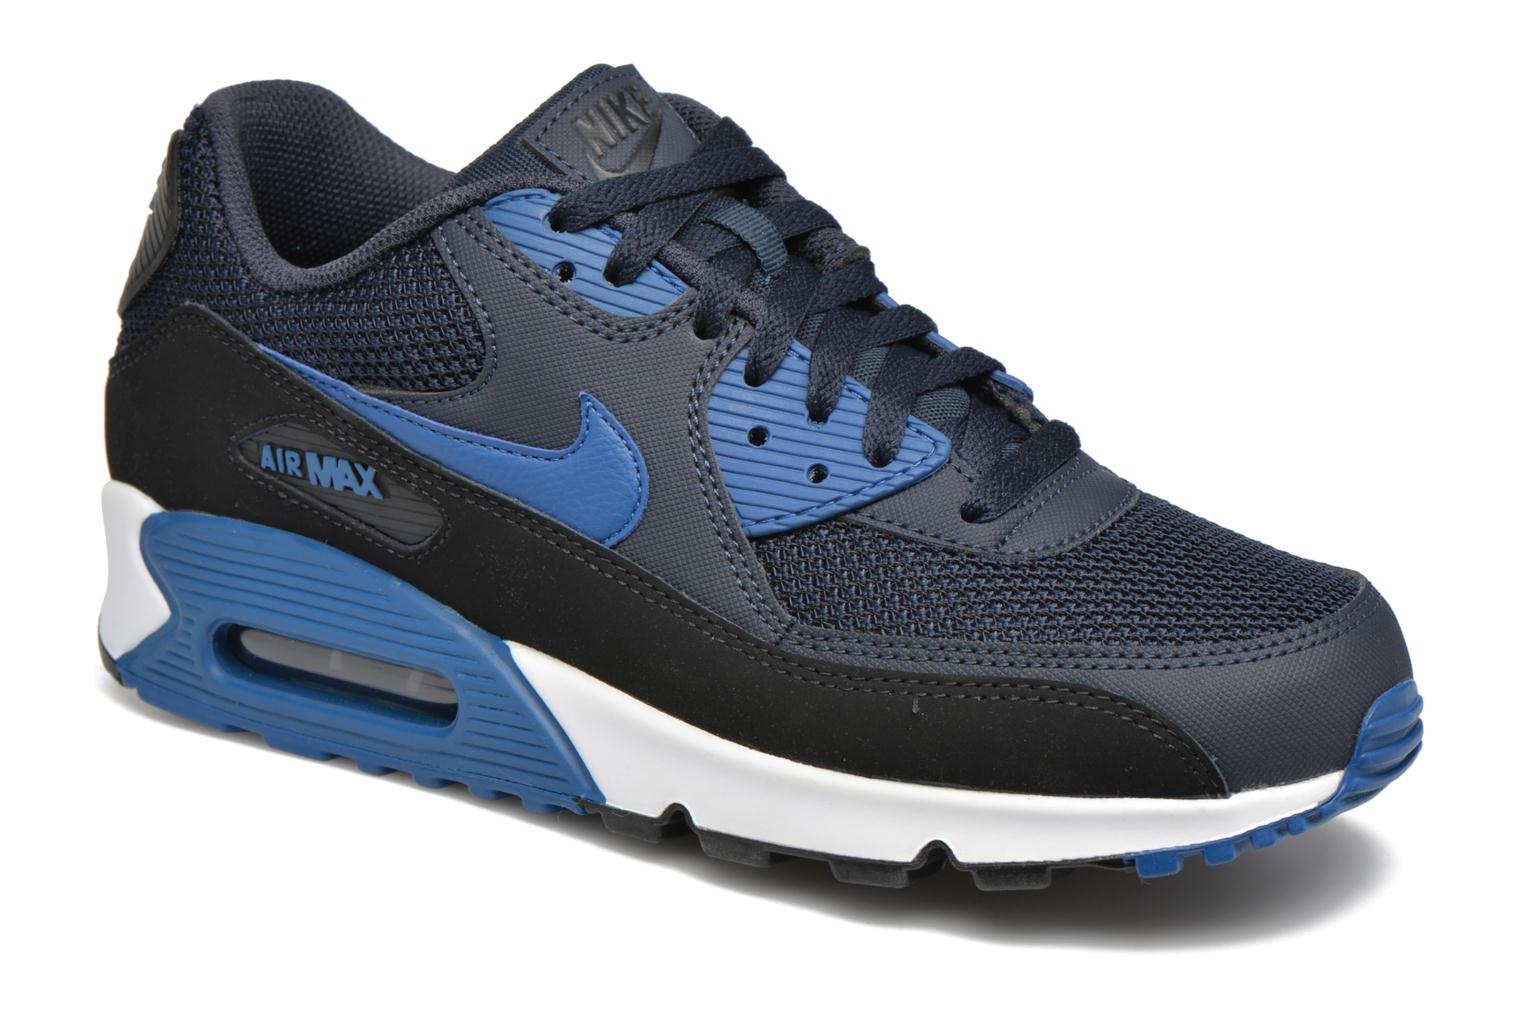 Nike Air Max 90 Essential Dark Obsidian/Court Blue-Black-White